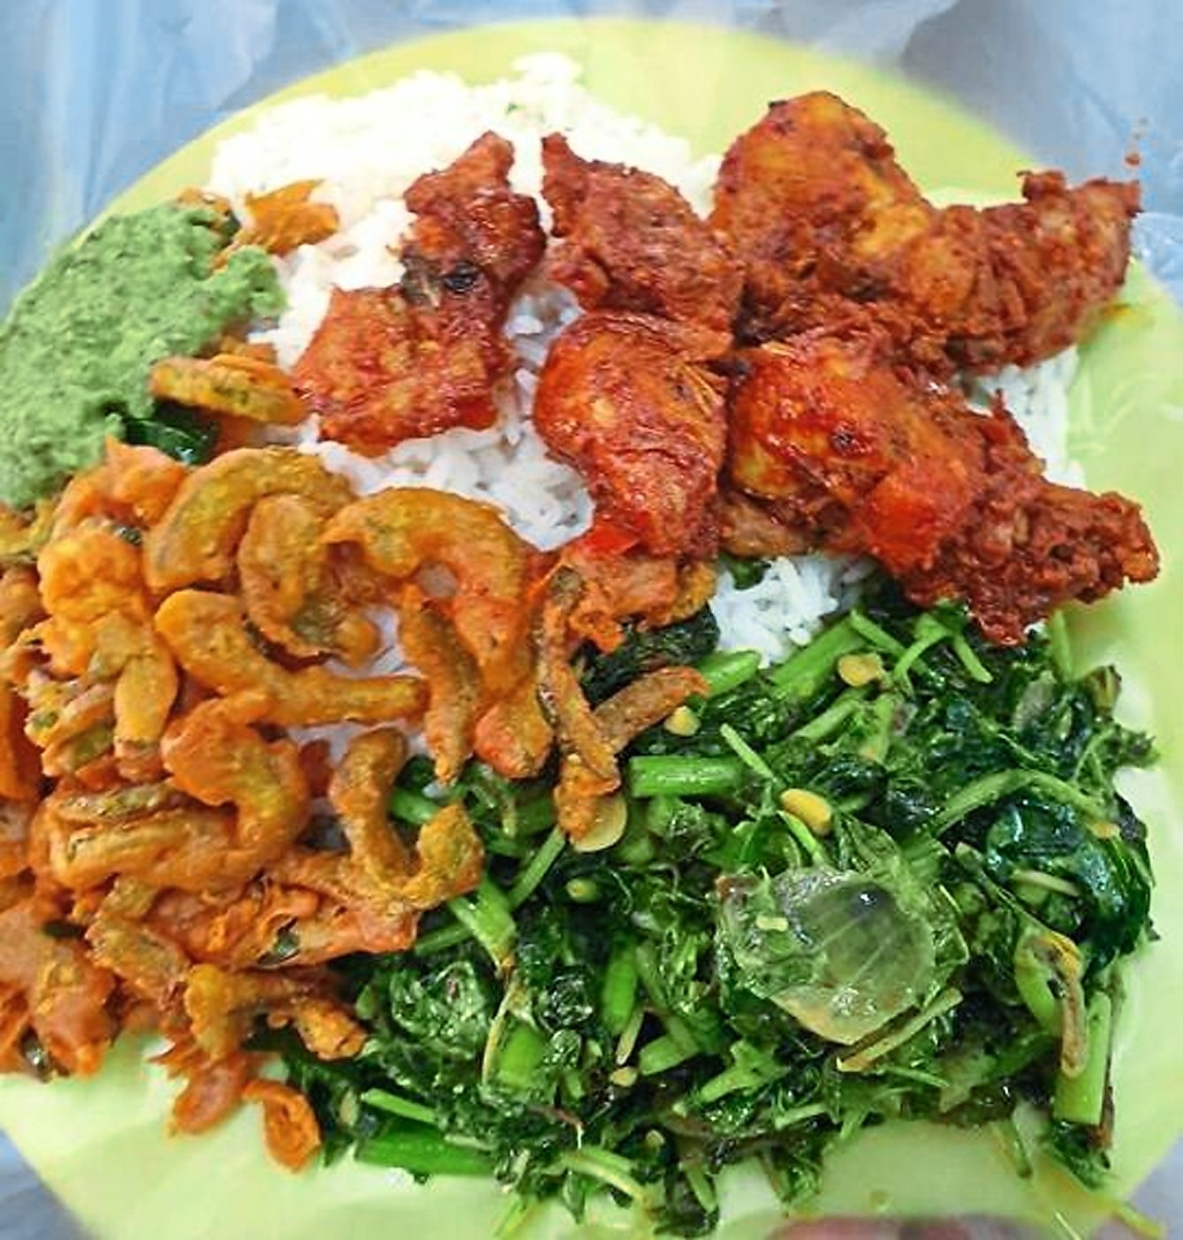 Pandian's stall offers both vegetarian and non-vegetarian dishes.